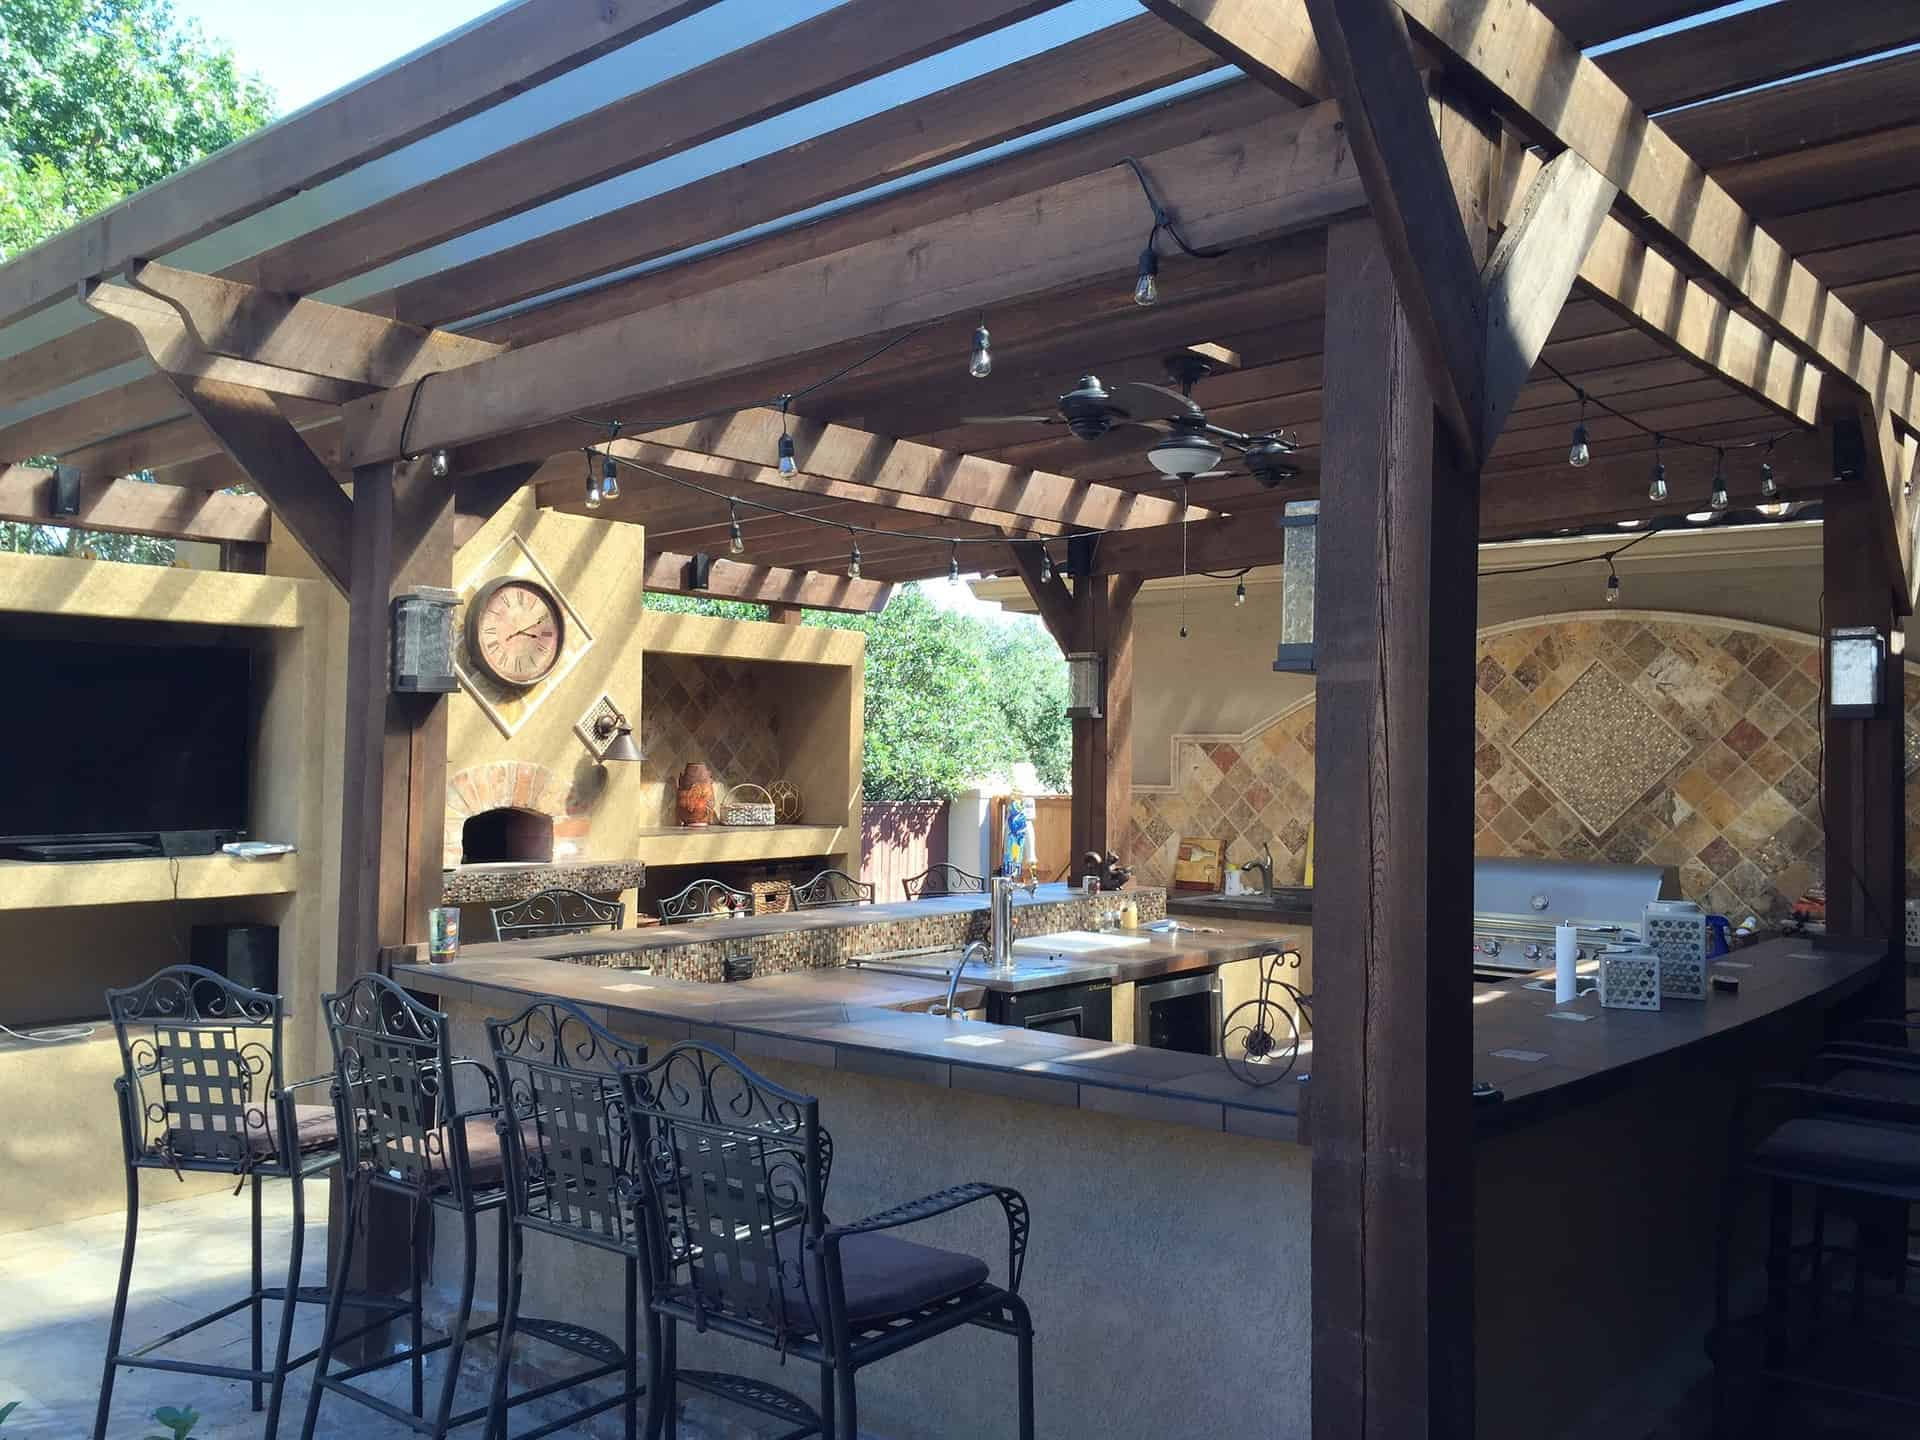 an example of outdoor kitchen with an U-shape style